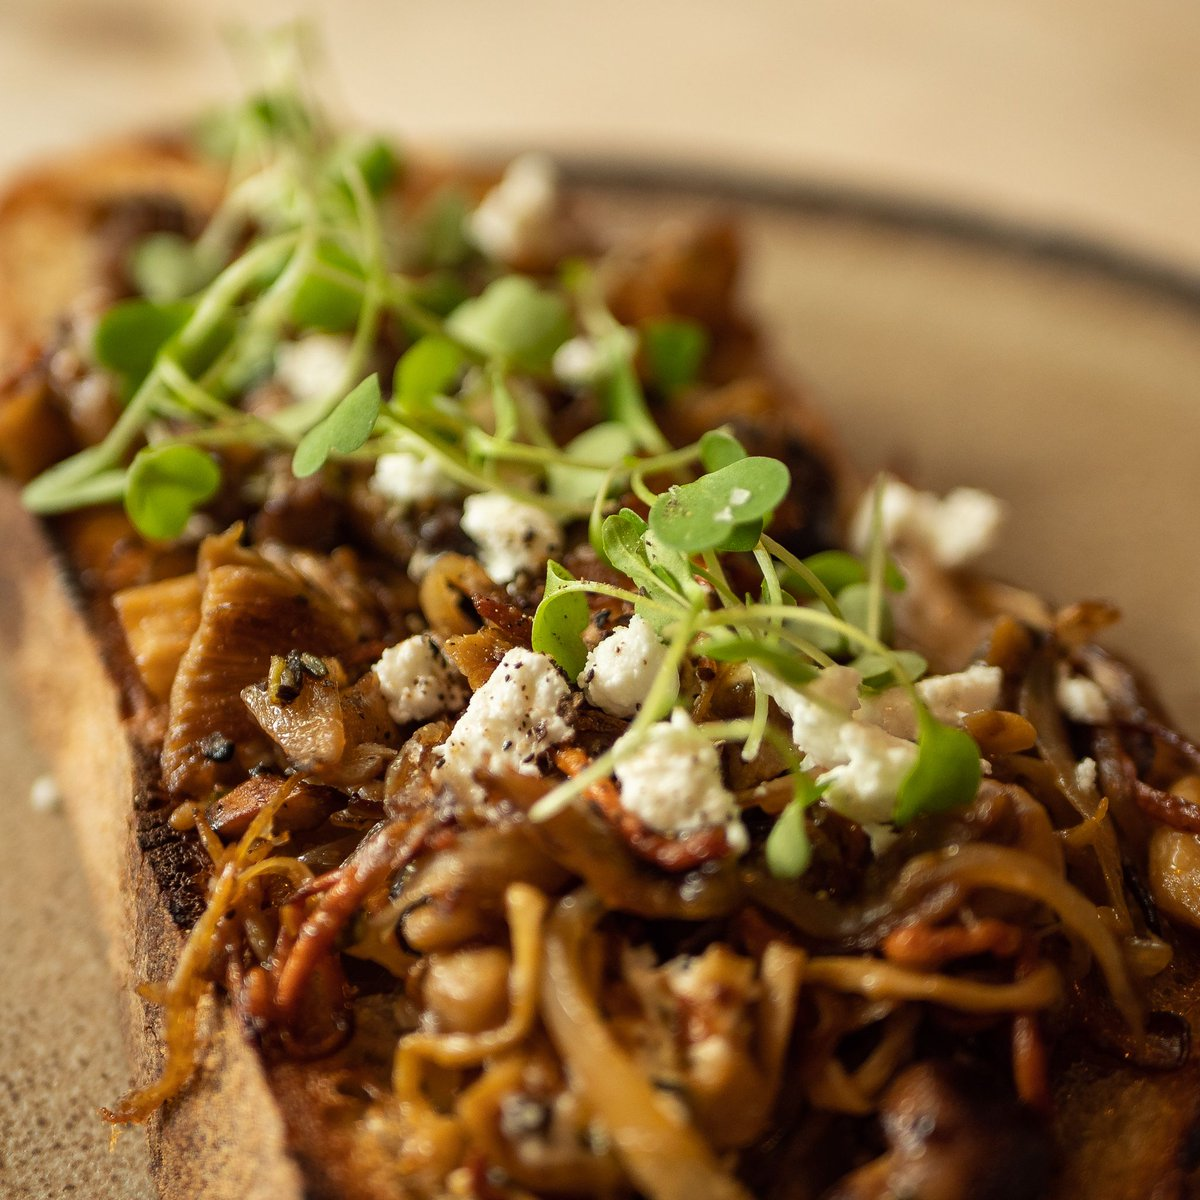 Check out this weeks Spinningfields special... Wild mushrooms on in-house baked sourdough 🔥 Available until next Tuesday!